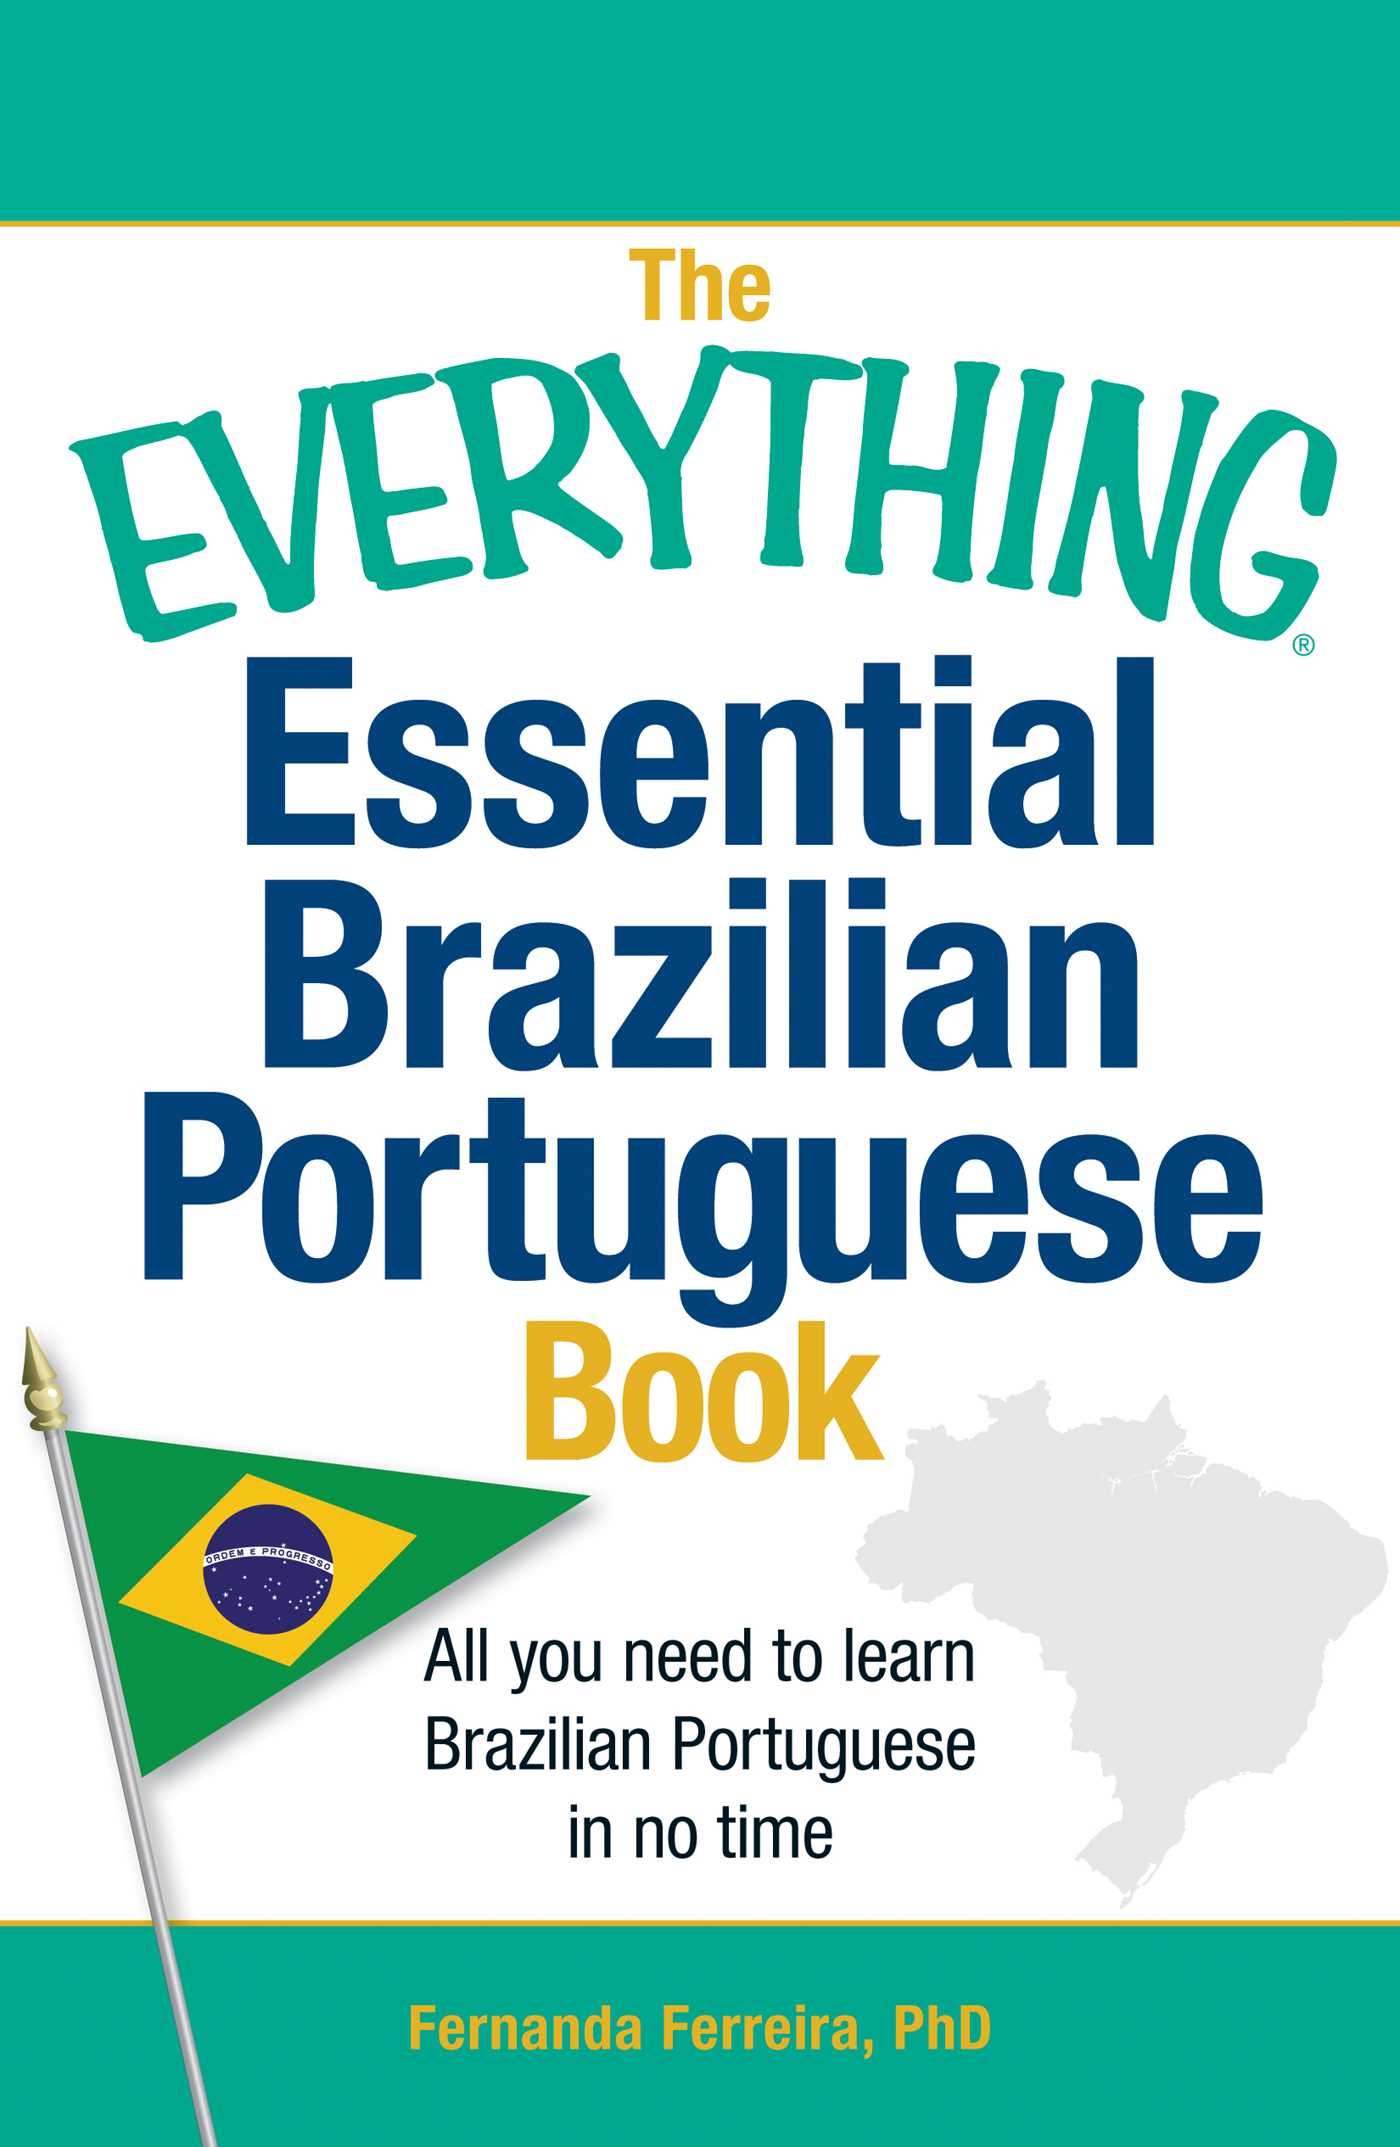 The everything essential brazilian portuguese book book by the everything essential brazilian portuguese book 9781440567544 hr m4hsunfo